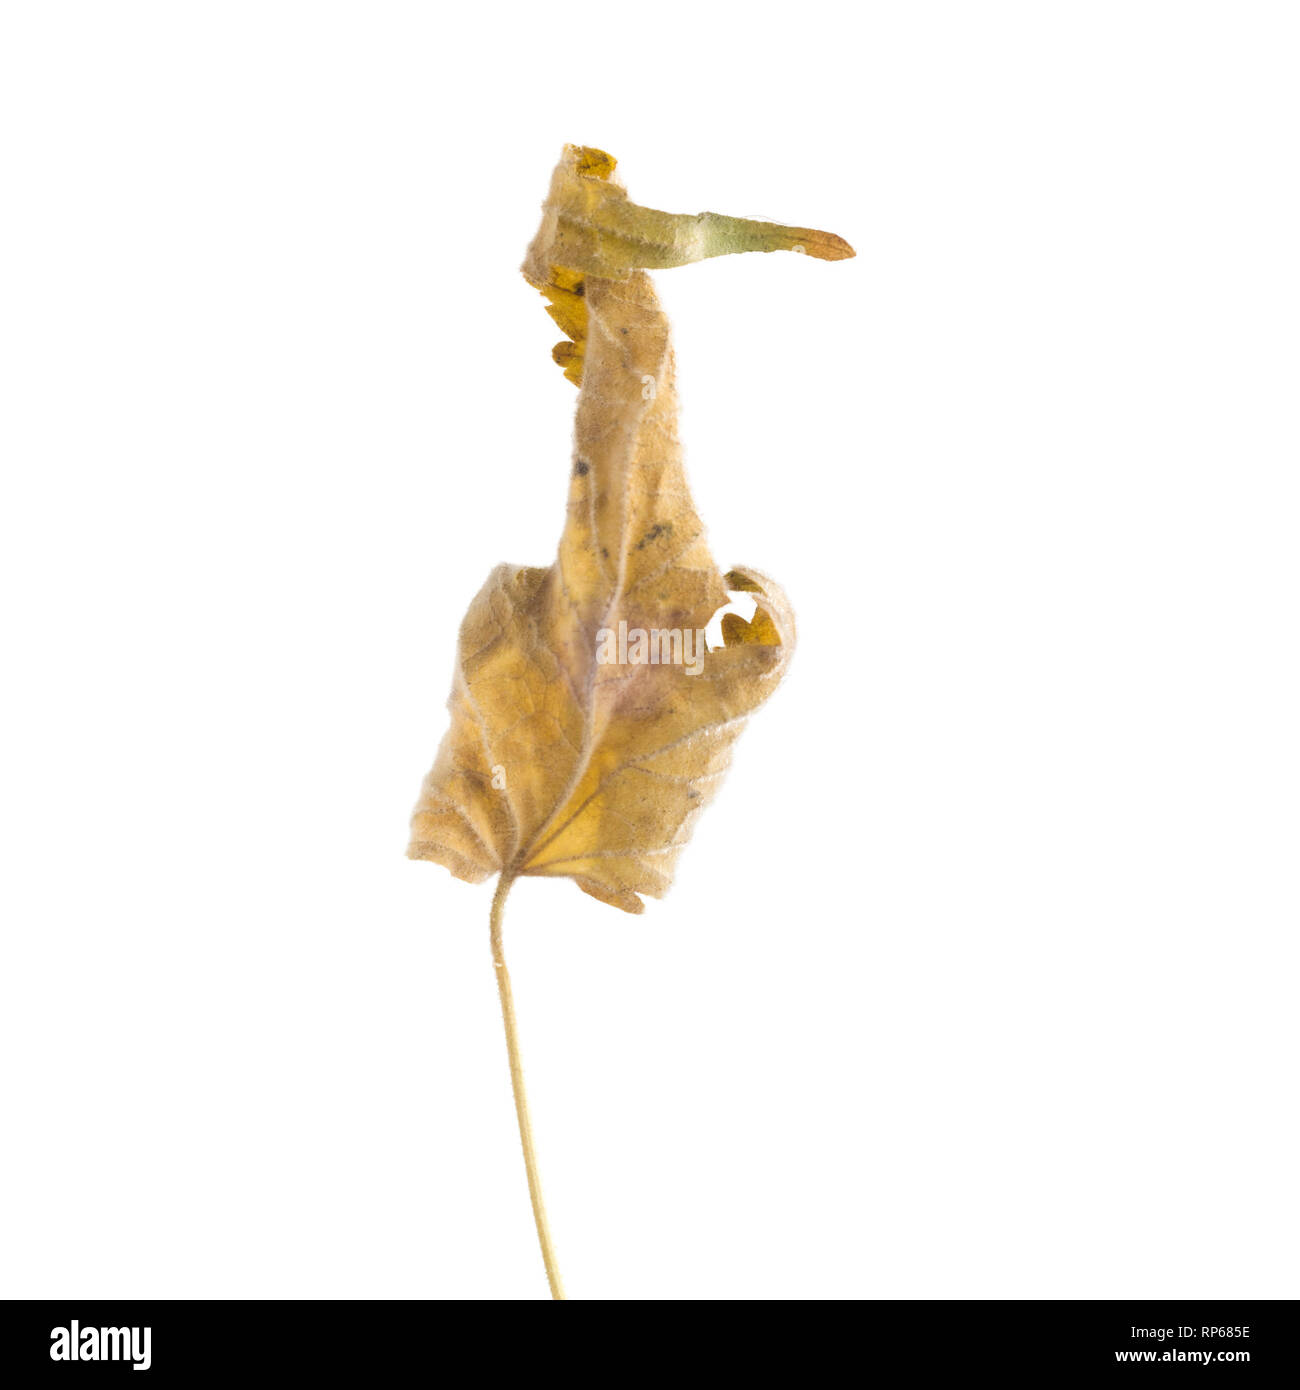 Dried Flowering Maple, Abutilon striatum thompsonii, Leaf against White Background VI - Stock Image